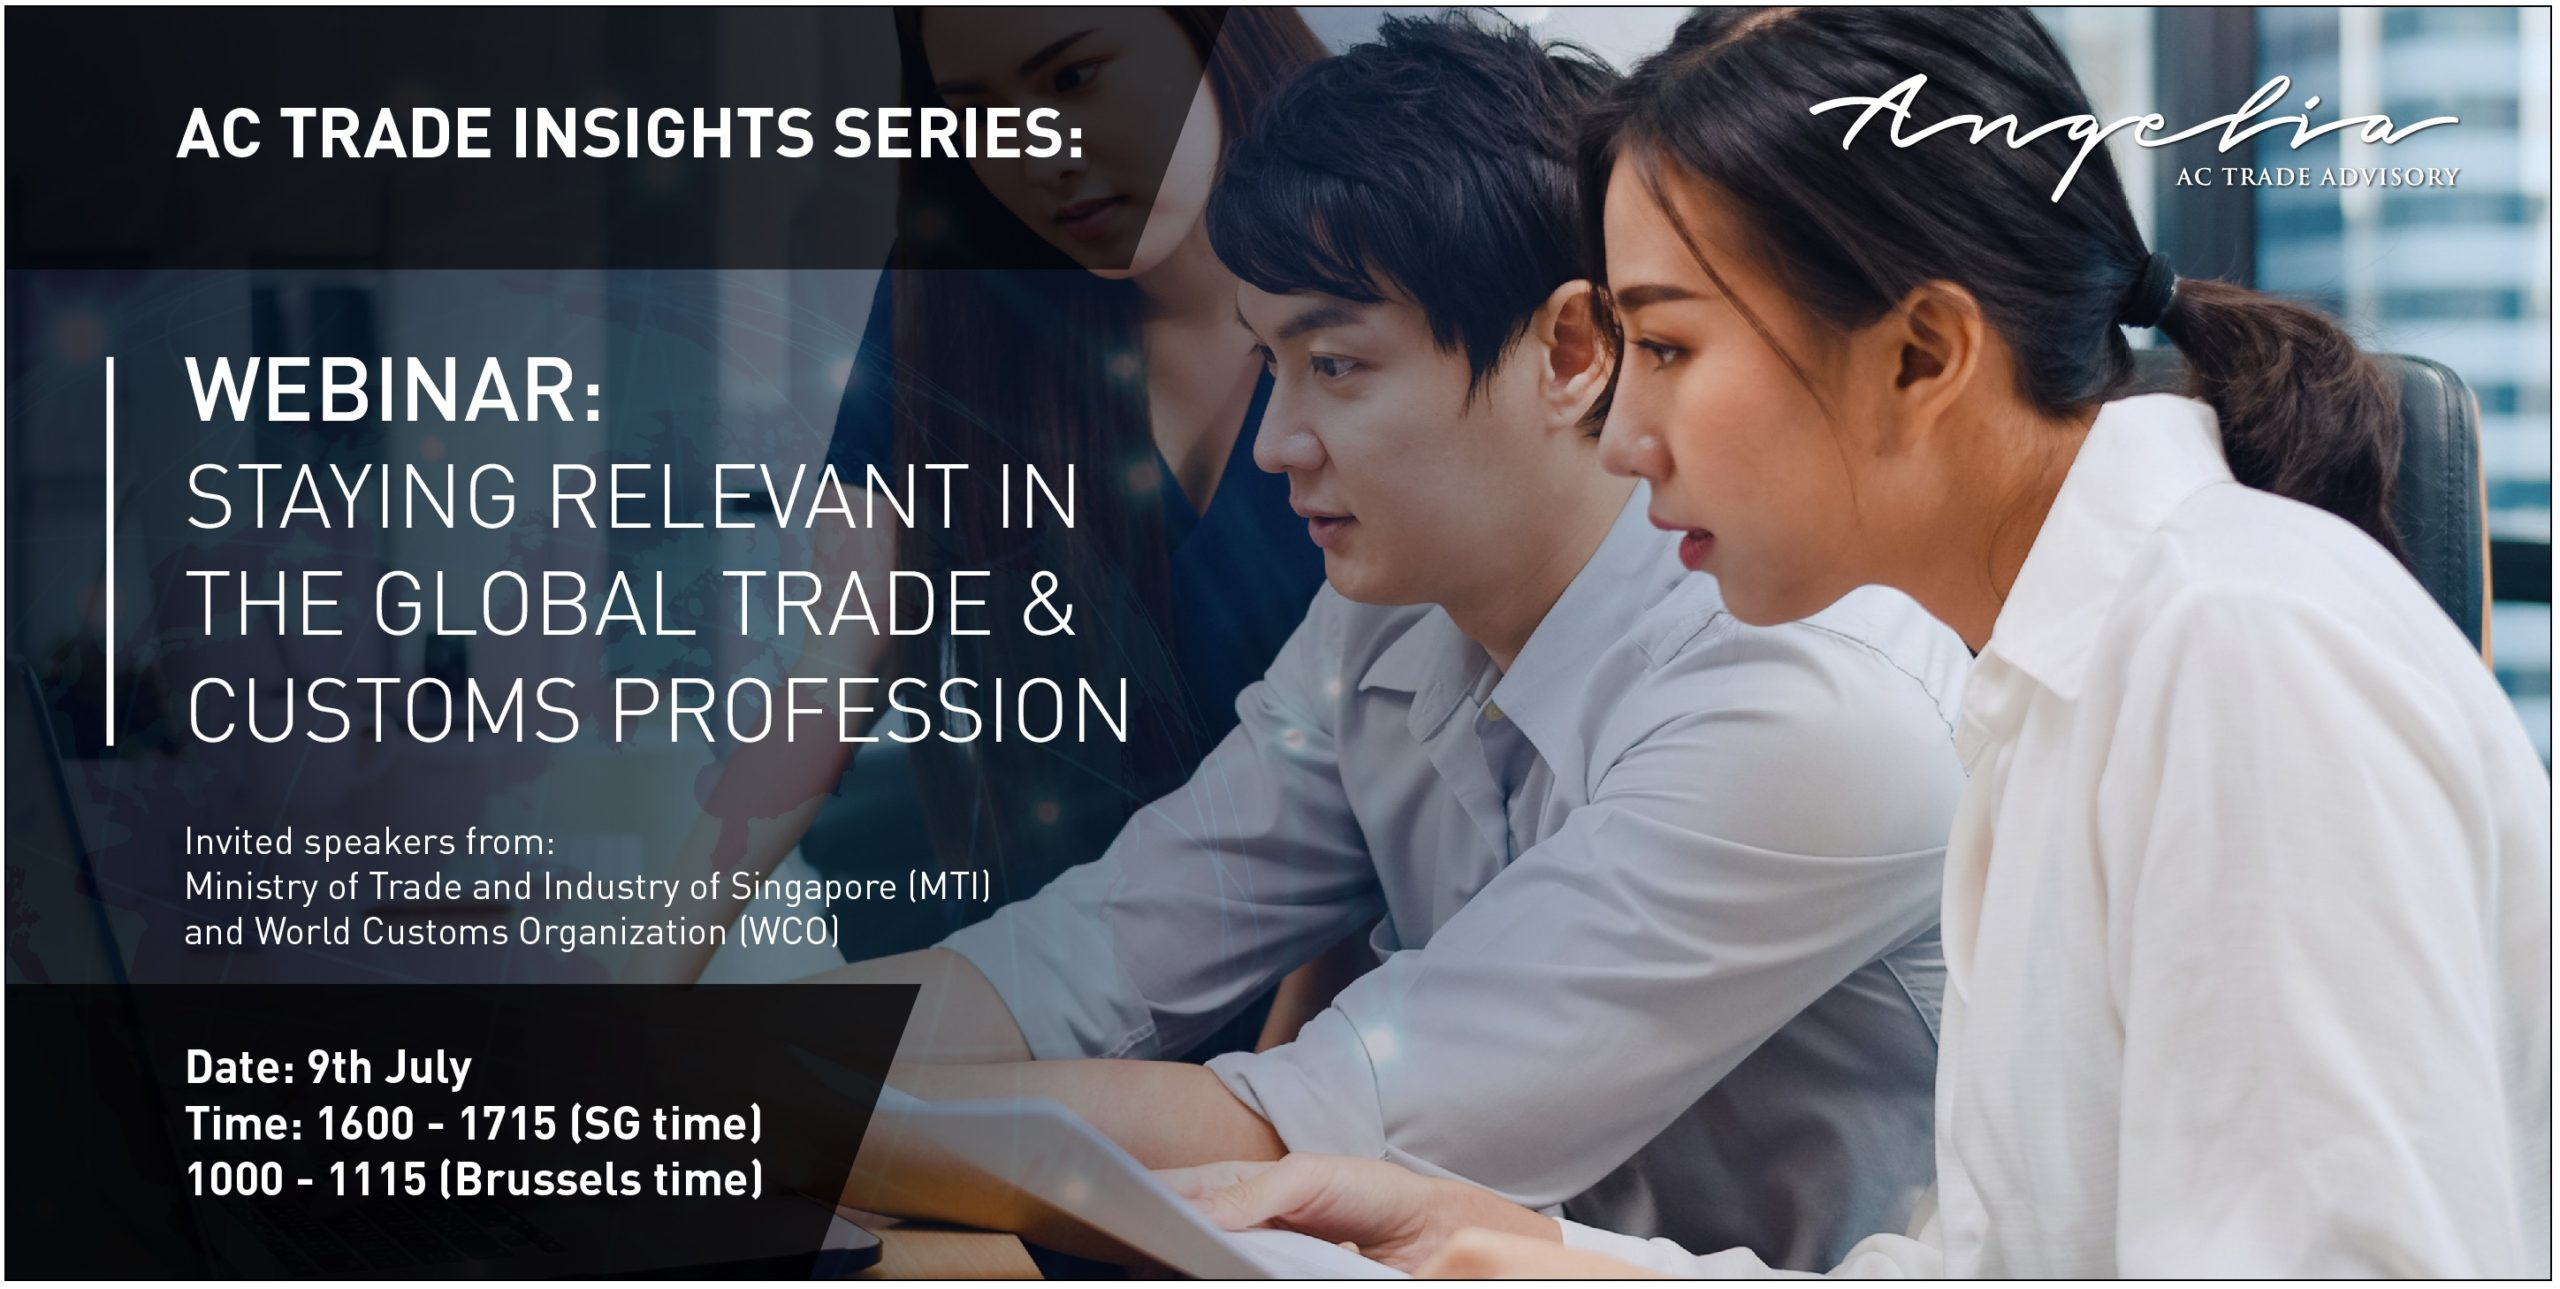 Staying relevant in the global trade and customs profession